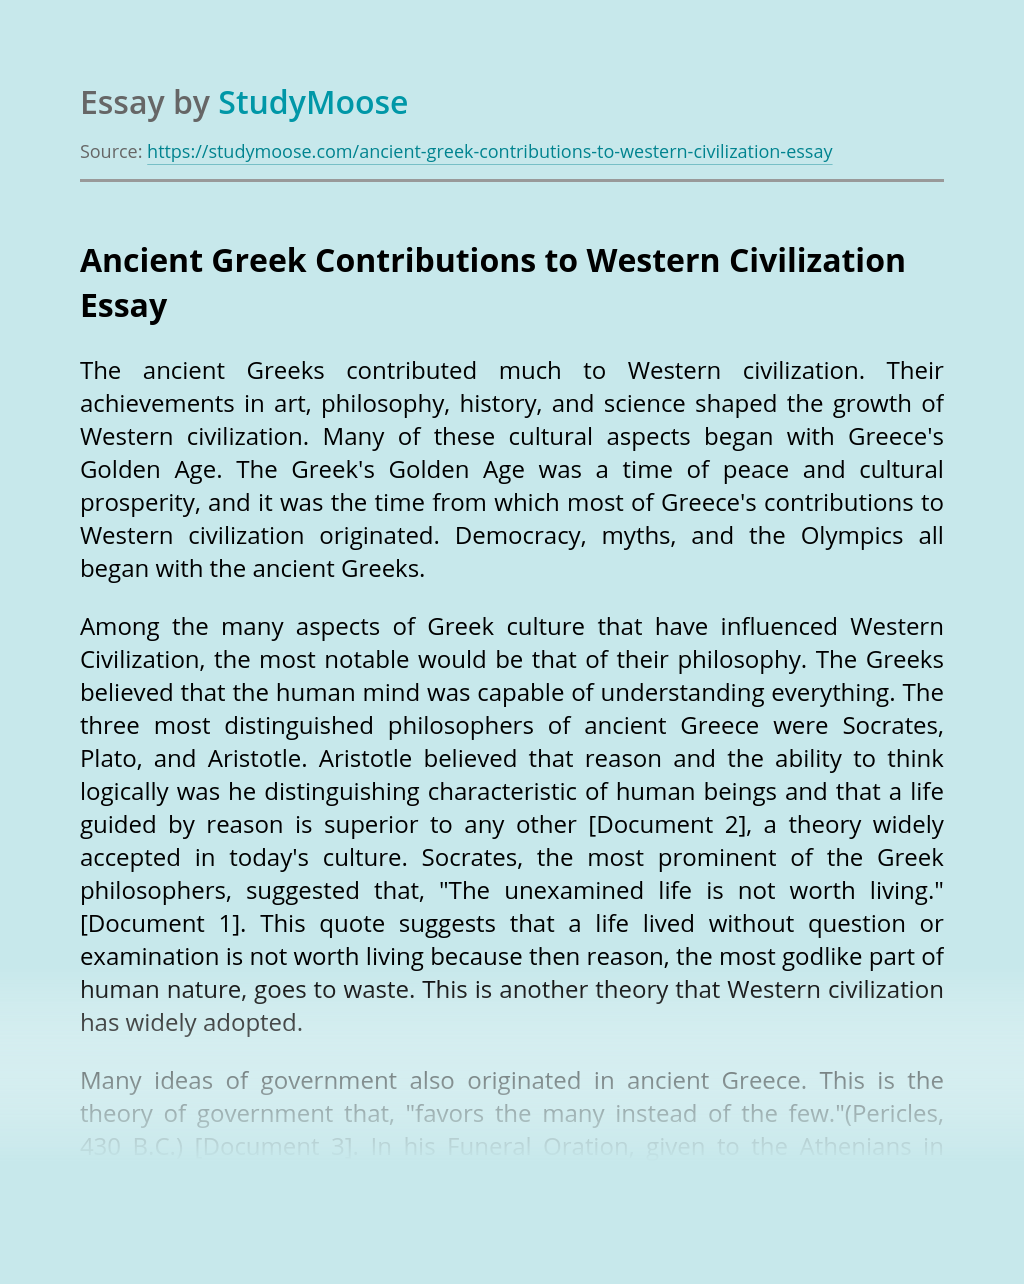 Ancient Greek Contributions to Western Civilization